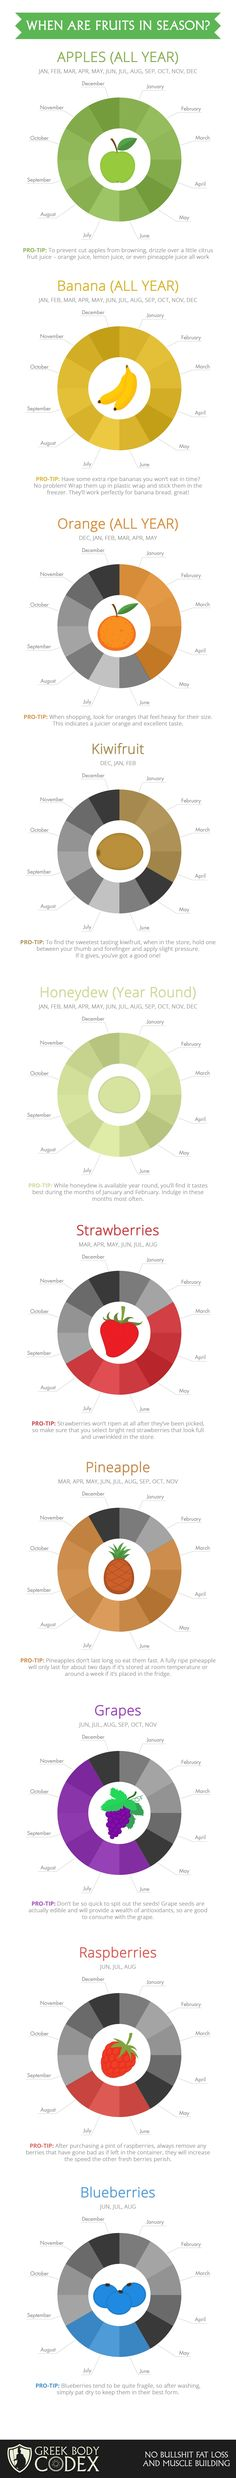 This infographic helps you keep up with in-season fruit